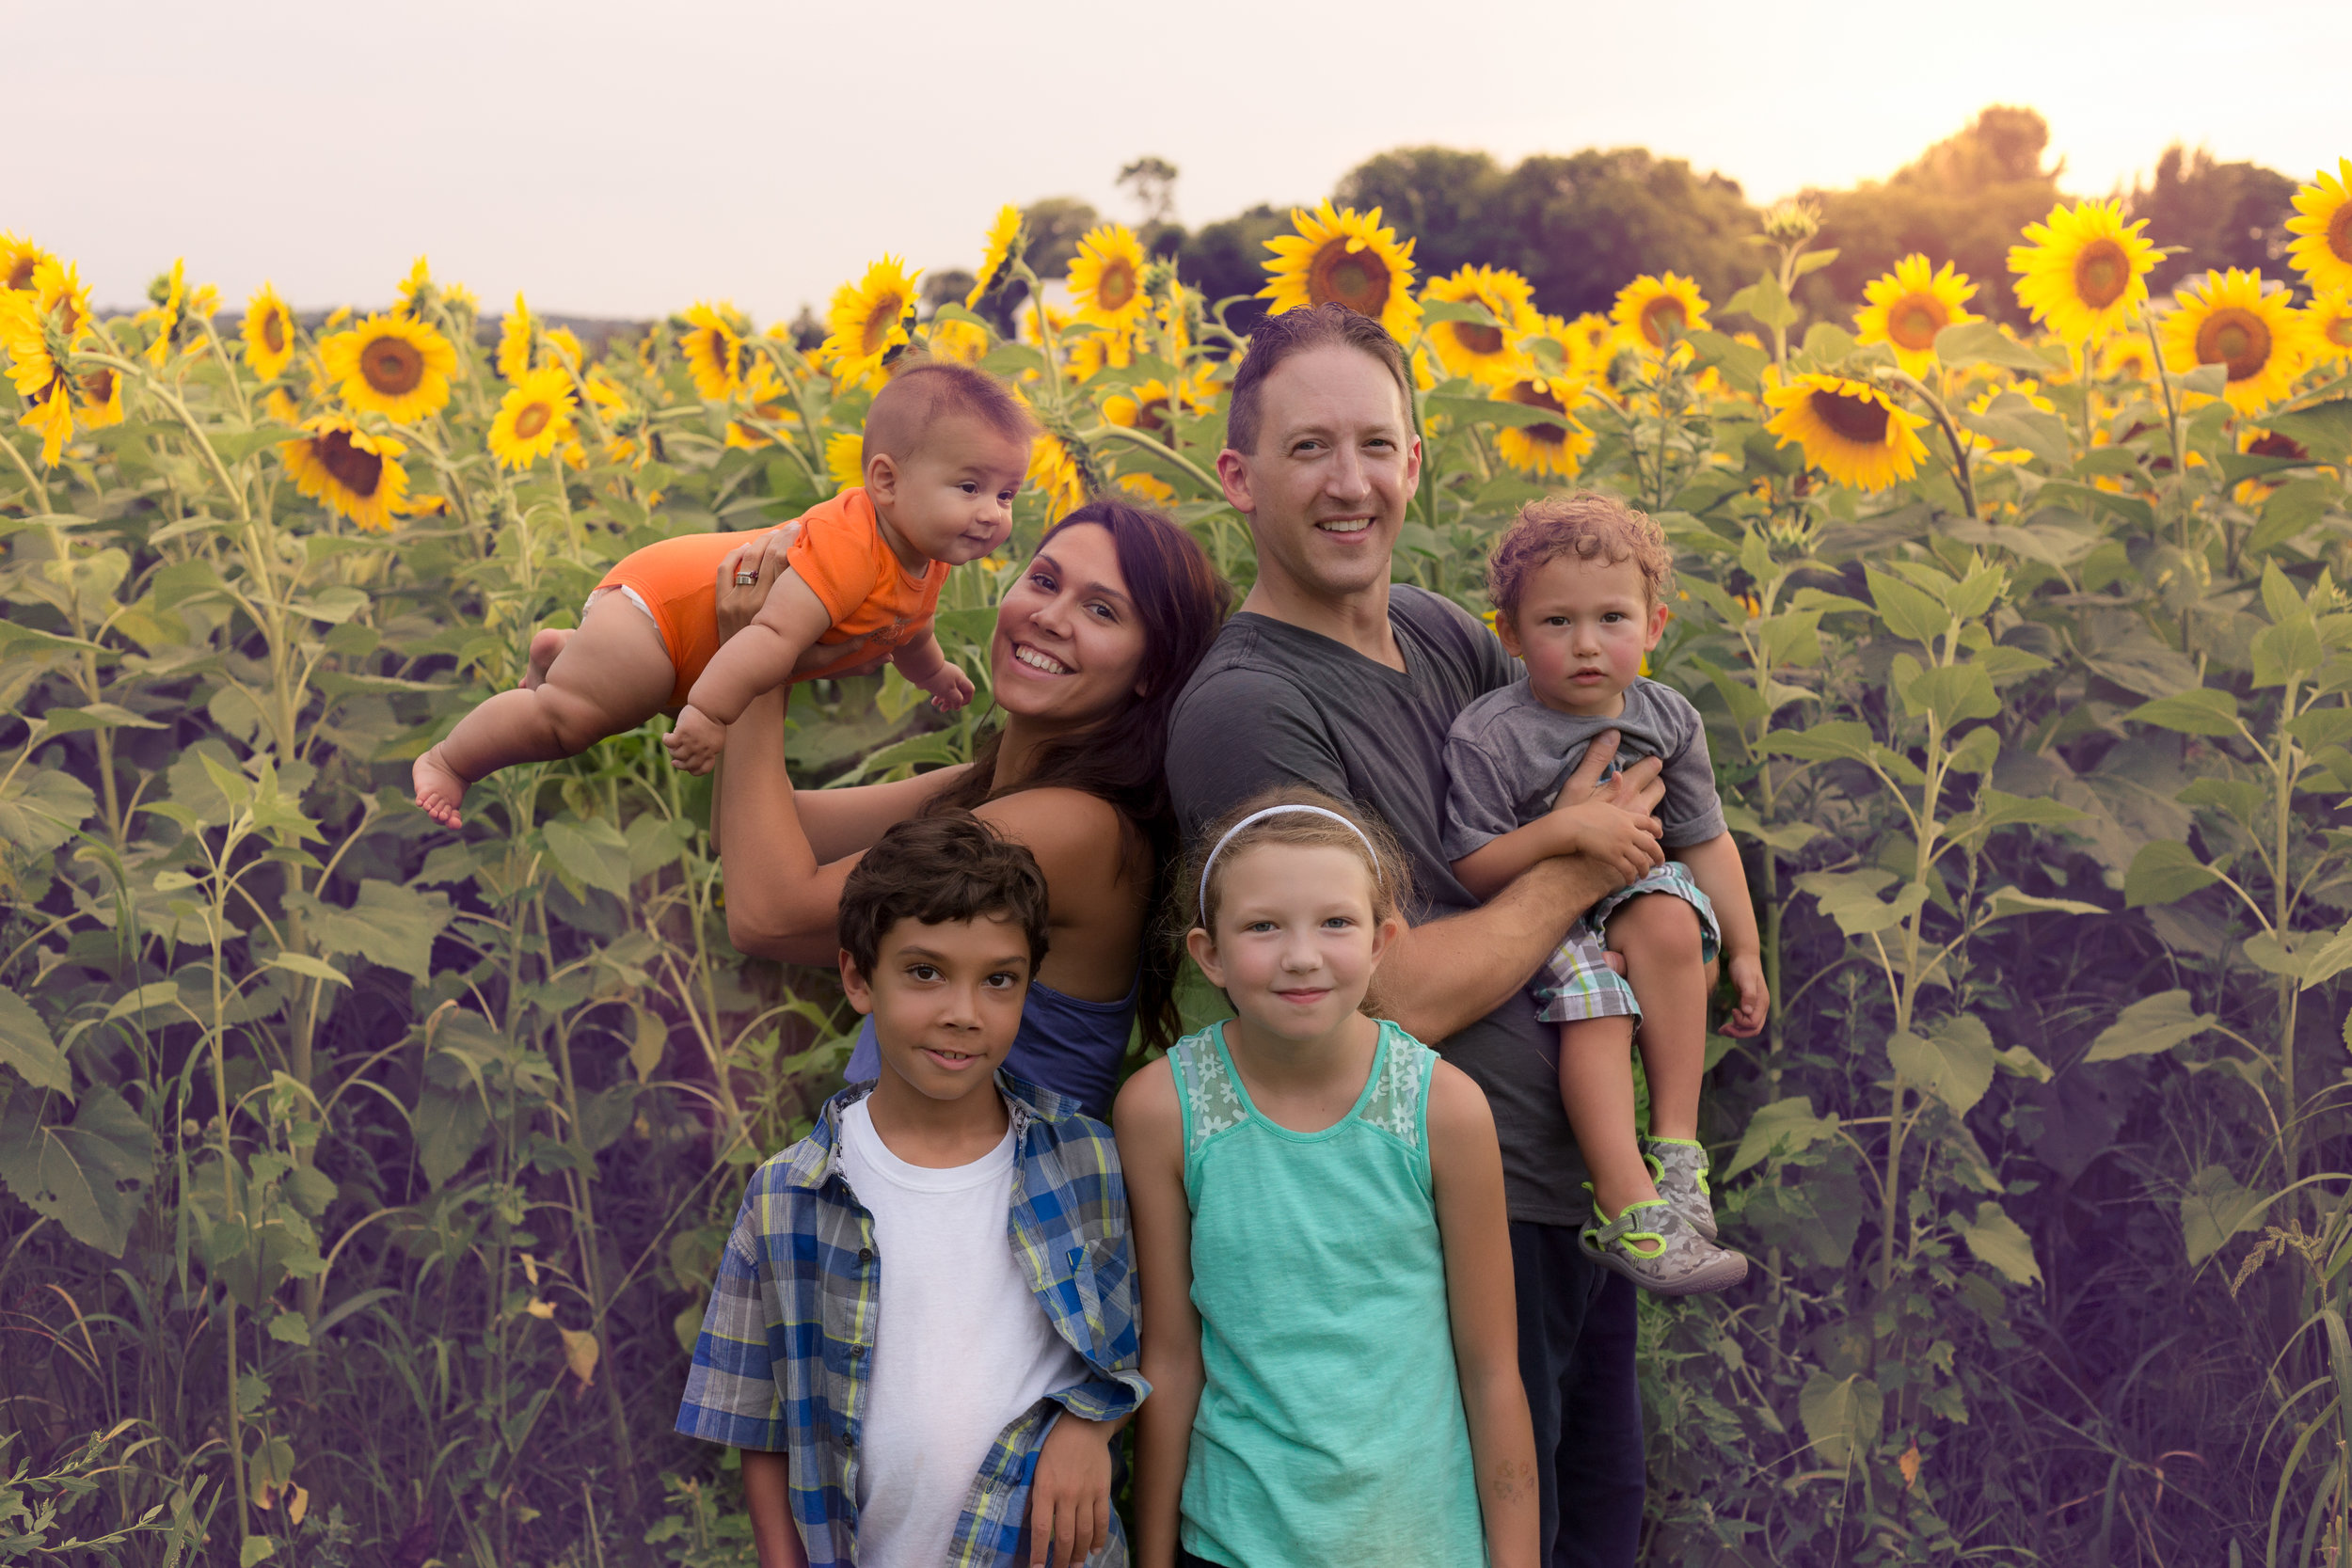 My last session was this fun family of 6!